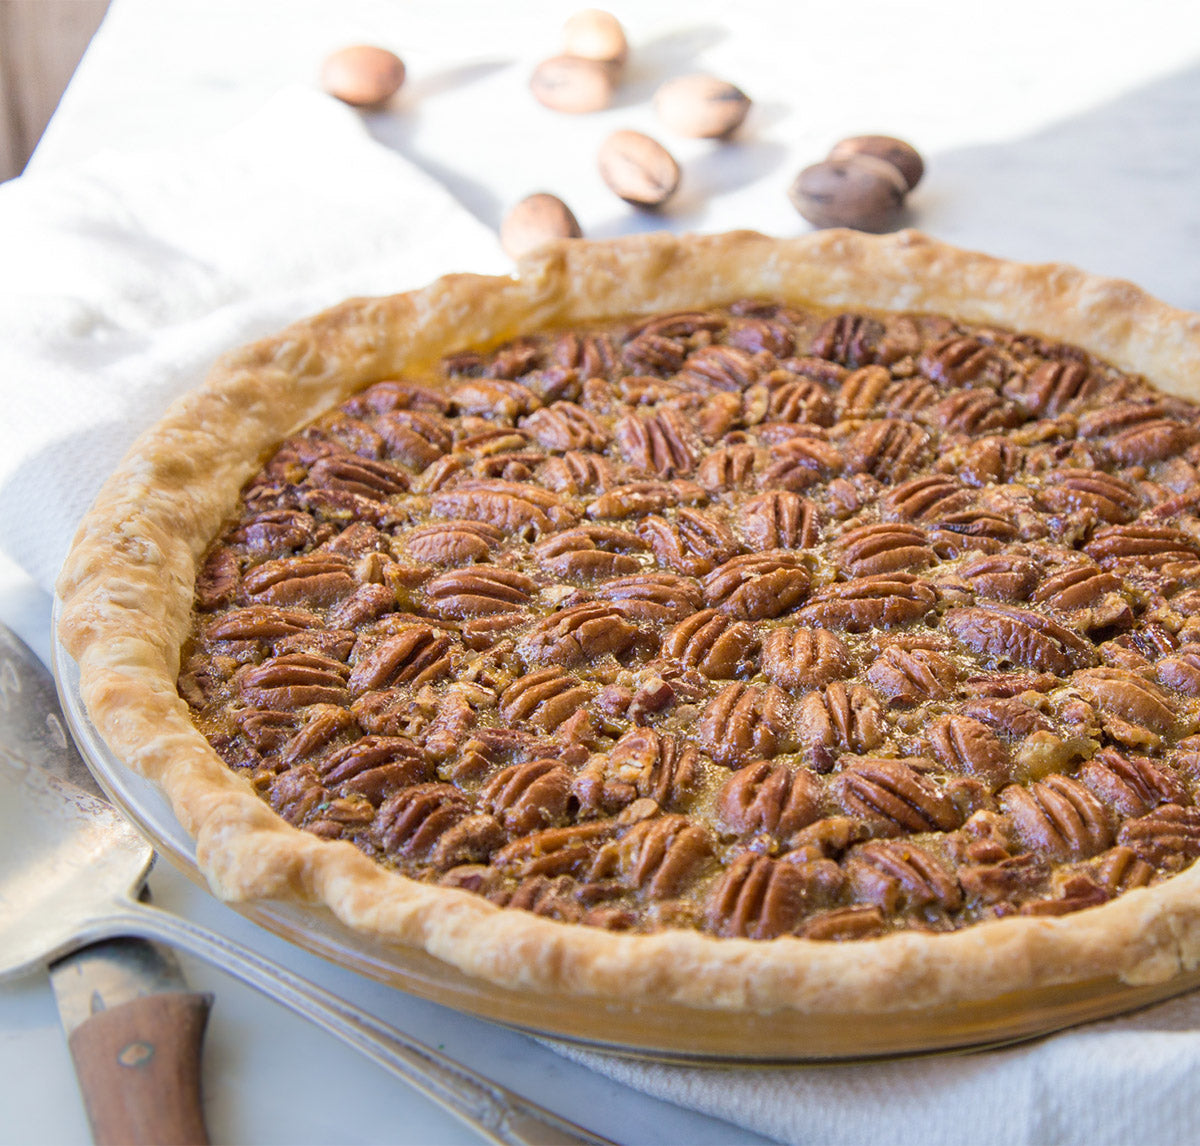 heirloom-grits-pecan-pie-whole-with-knife-and-pie-server